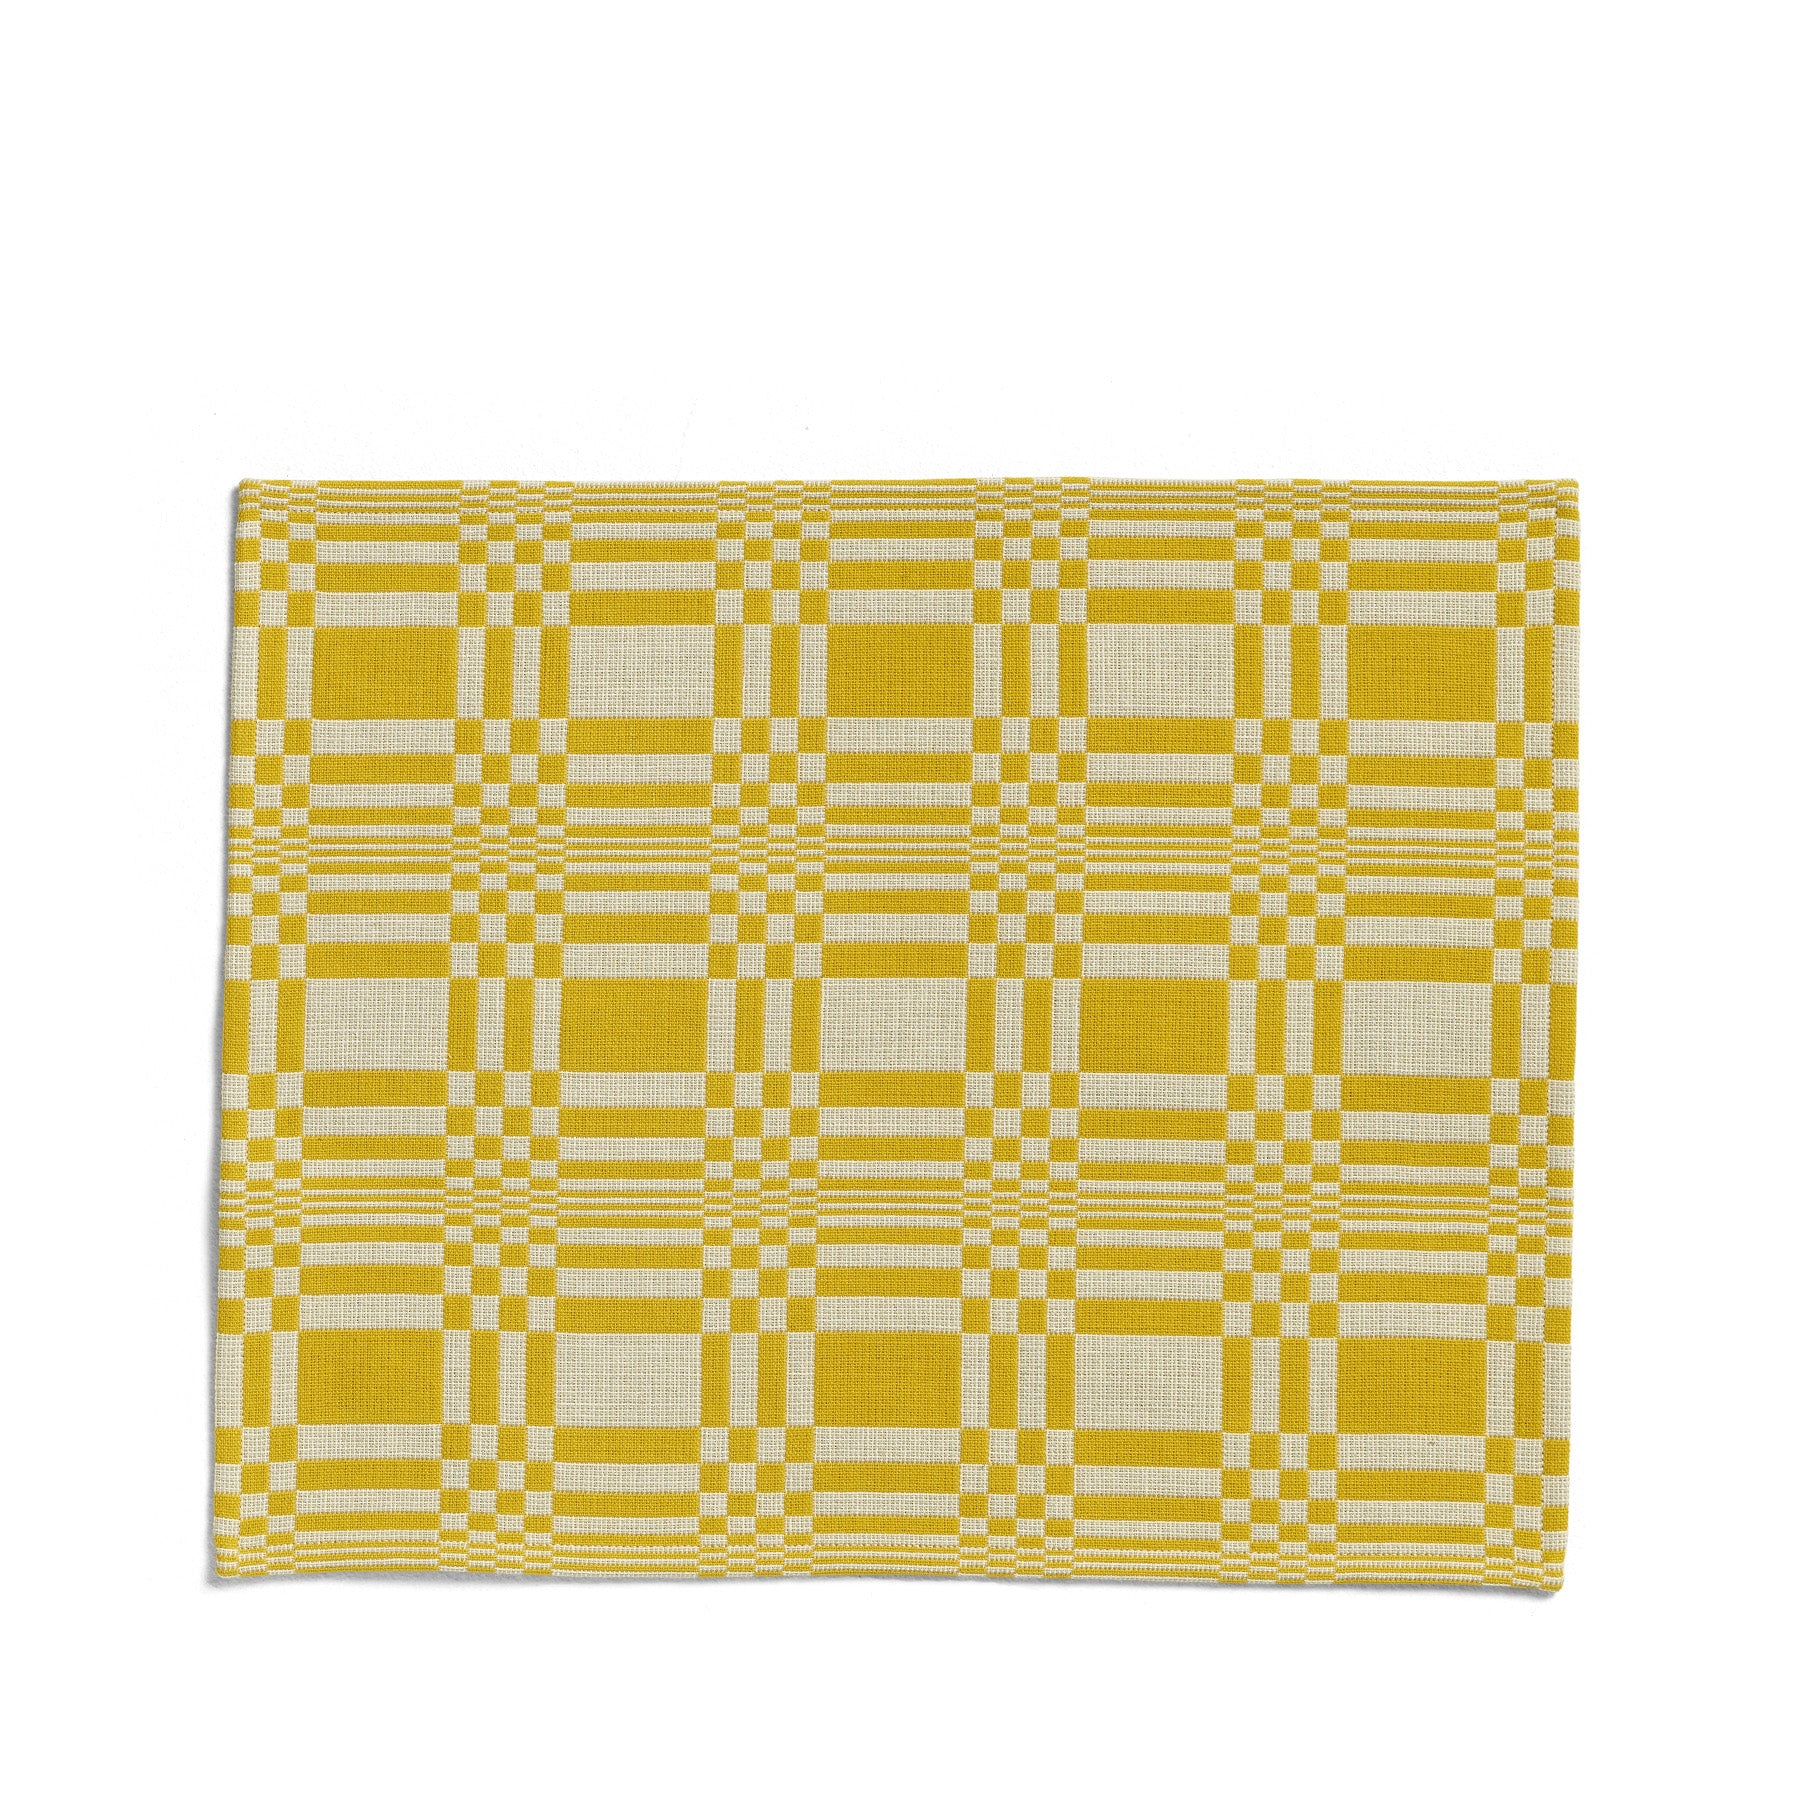 Doris Placemat in Yellow Zoom Image 1